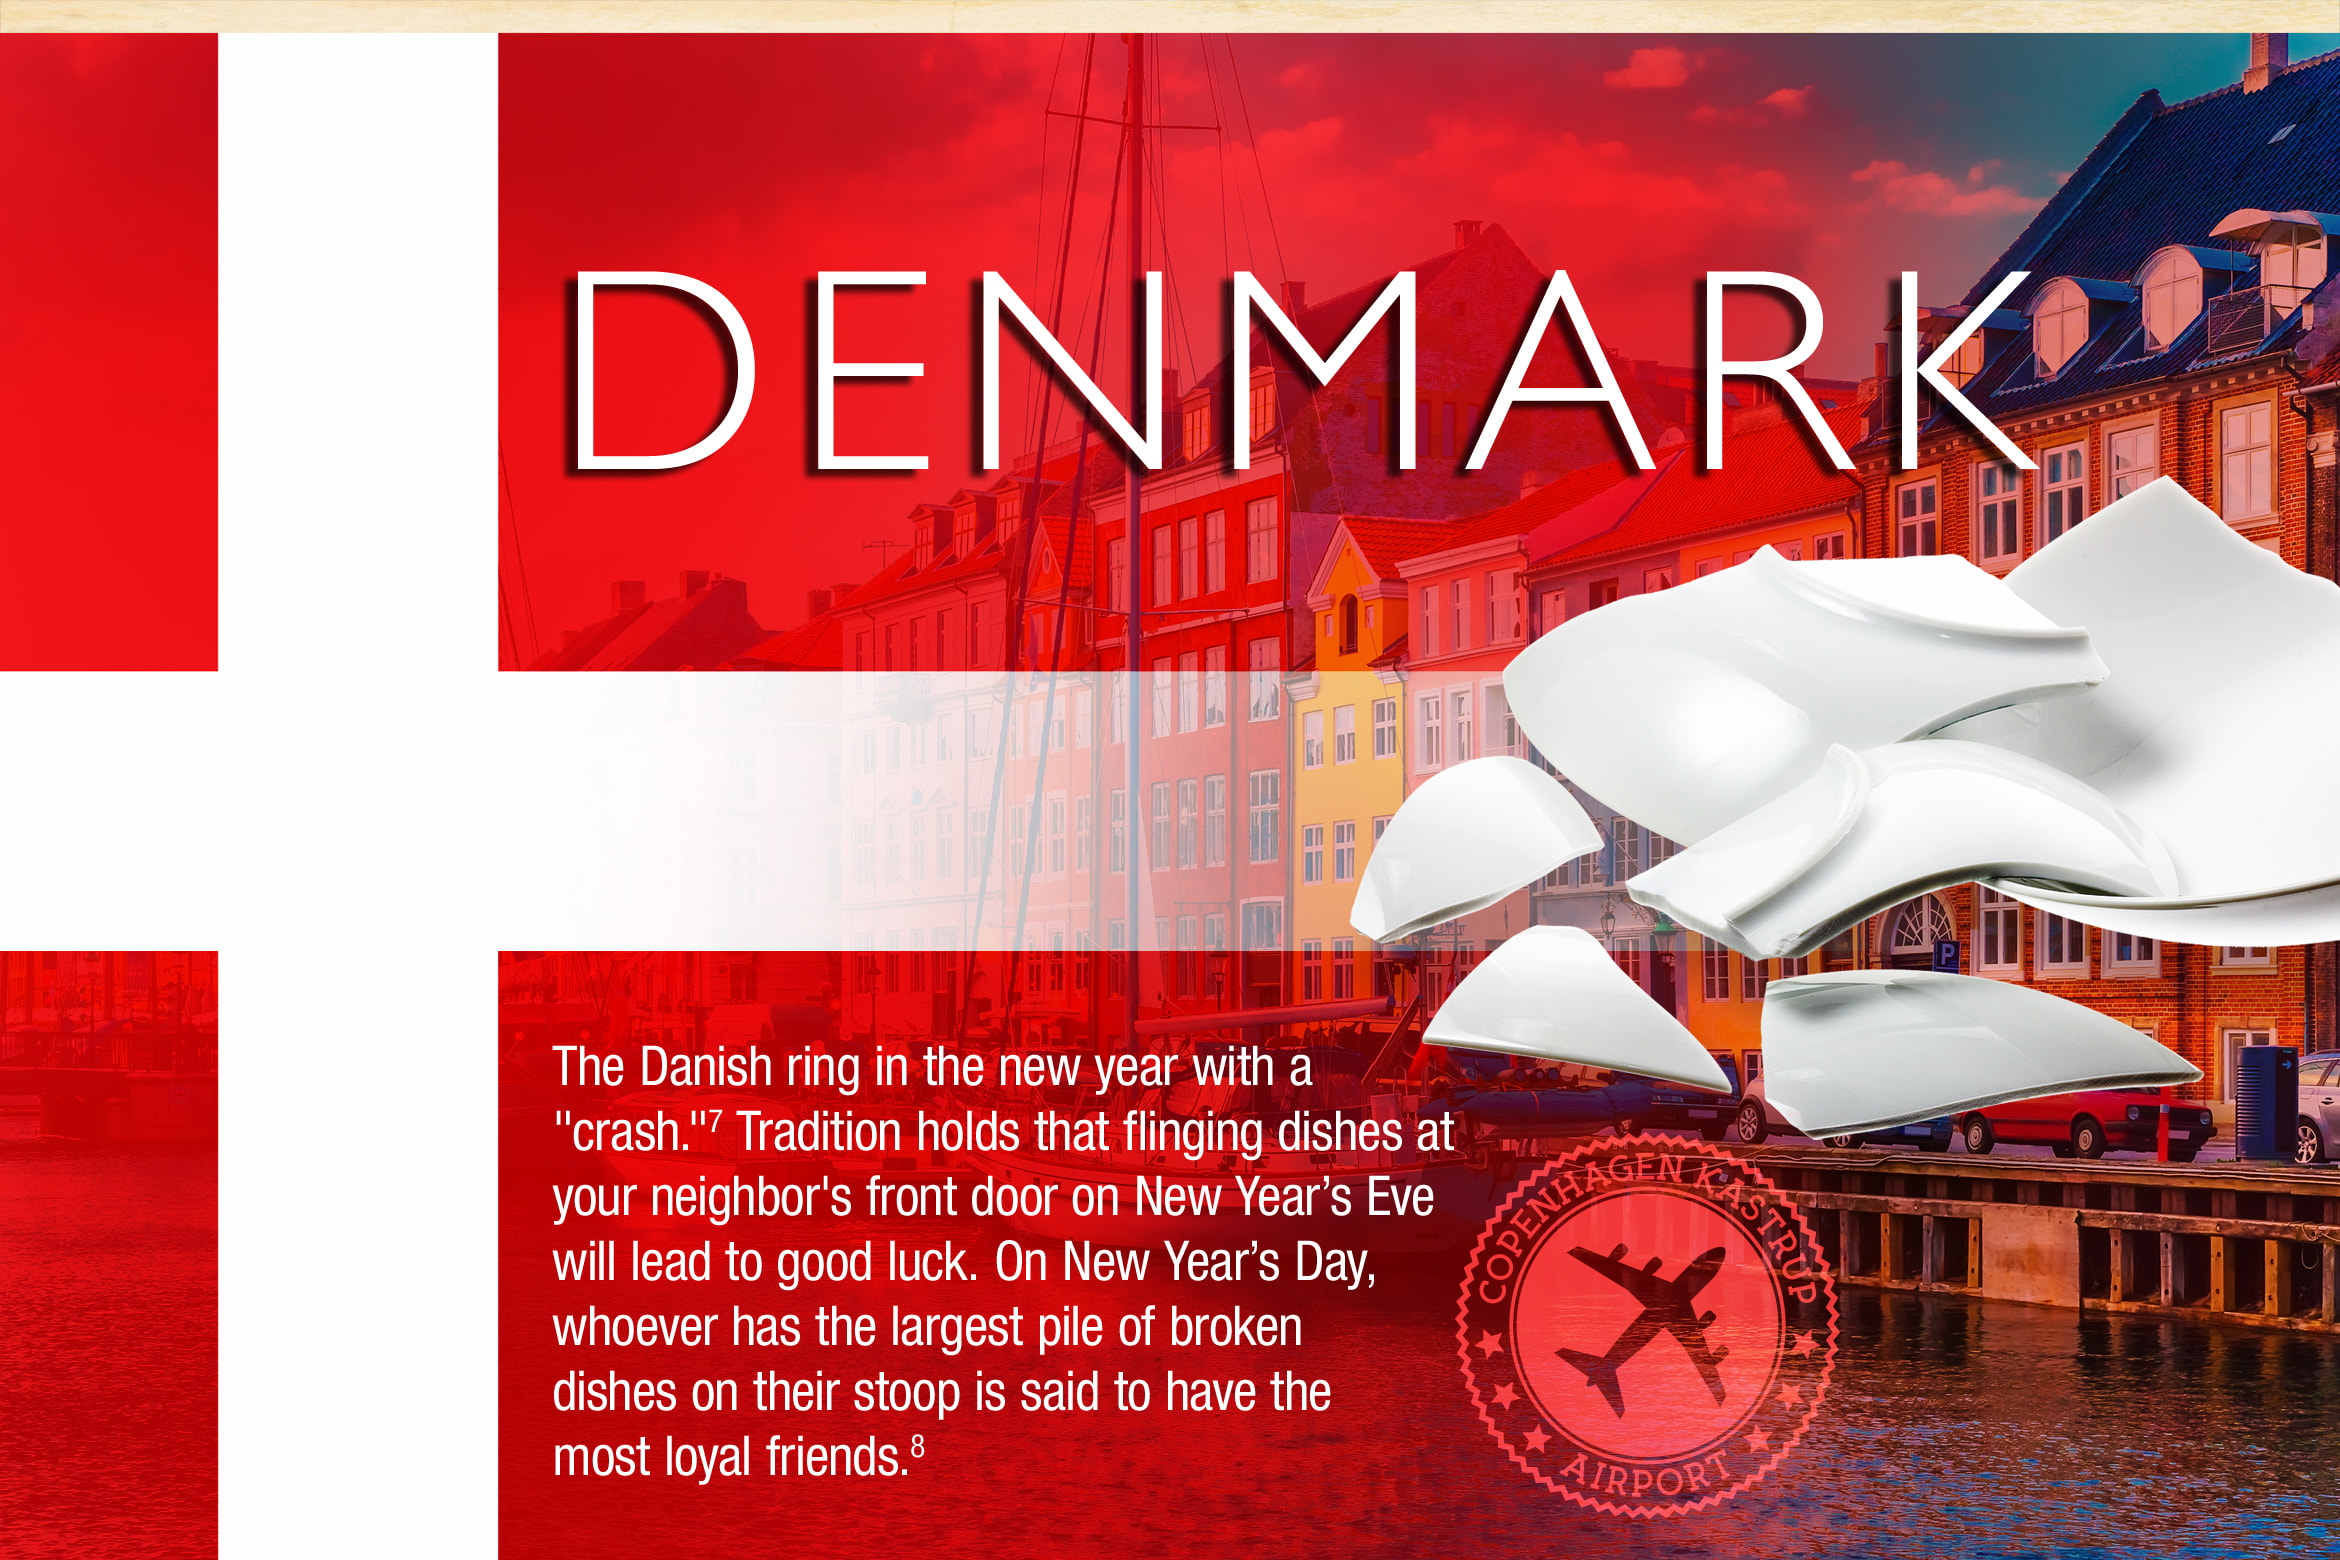 "Denmark. The Danish ring in the new year with a  ""crash.""7 Tradition holds that flinging dishes at your neighbors front door on New Year's Eve will lead to good luck. On New Year's Day, whoever has the largest pile of broken dishes on their stoop is said to have the most loyal friends.8"